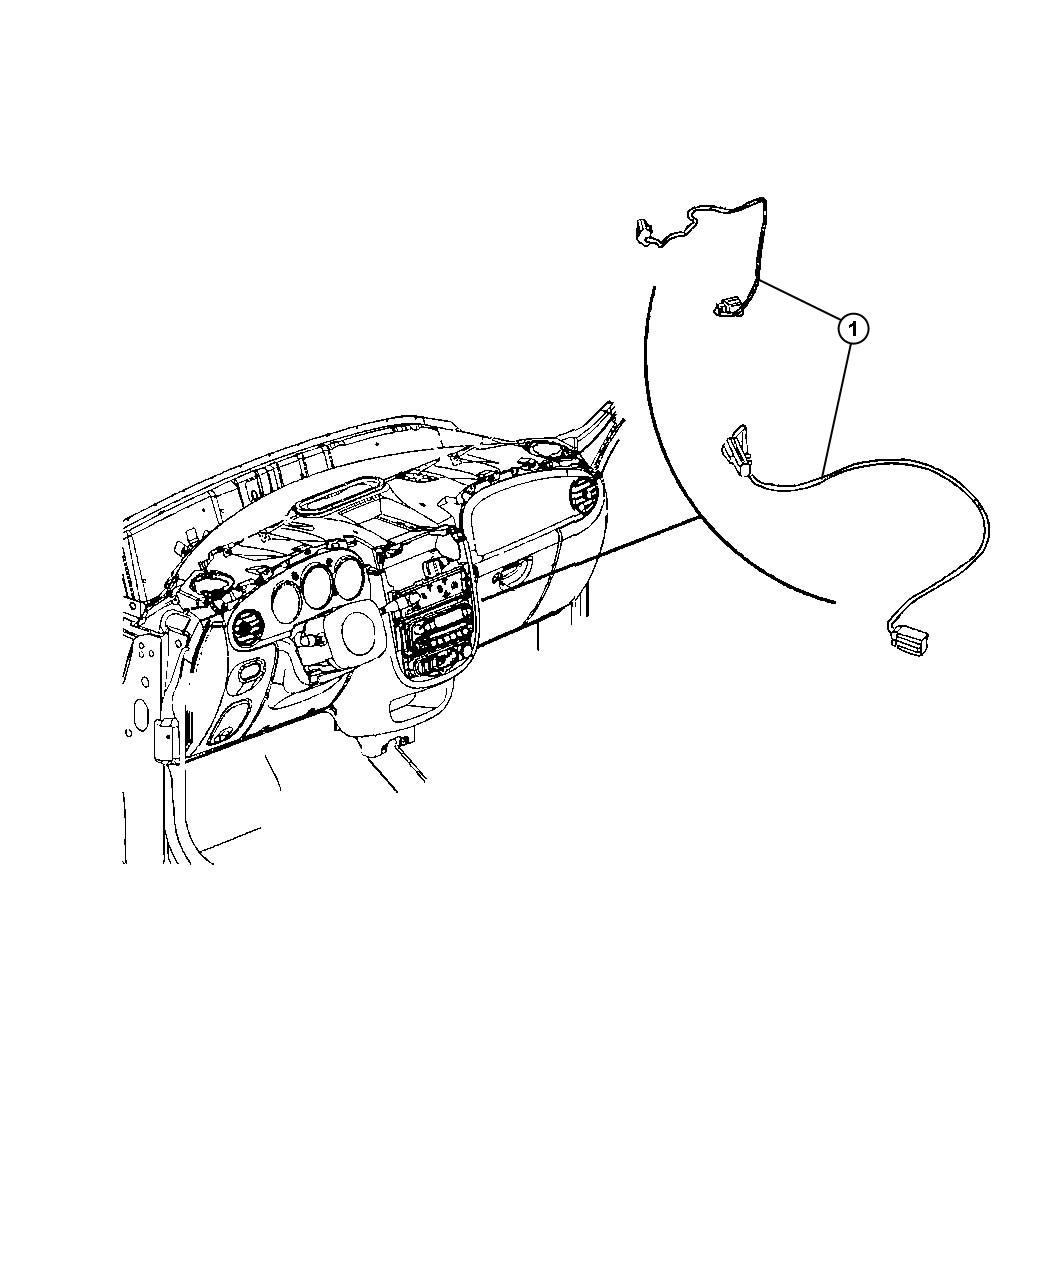 wiring harness connector 4way for 20032005 chrysler pt cruiser